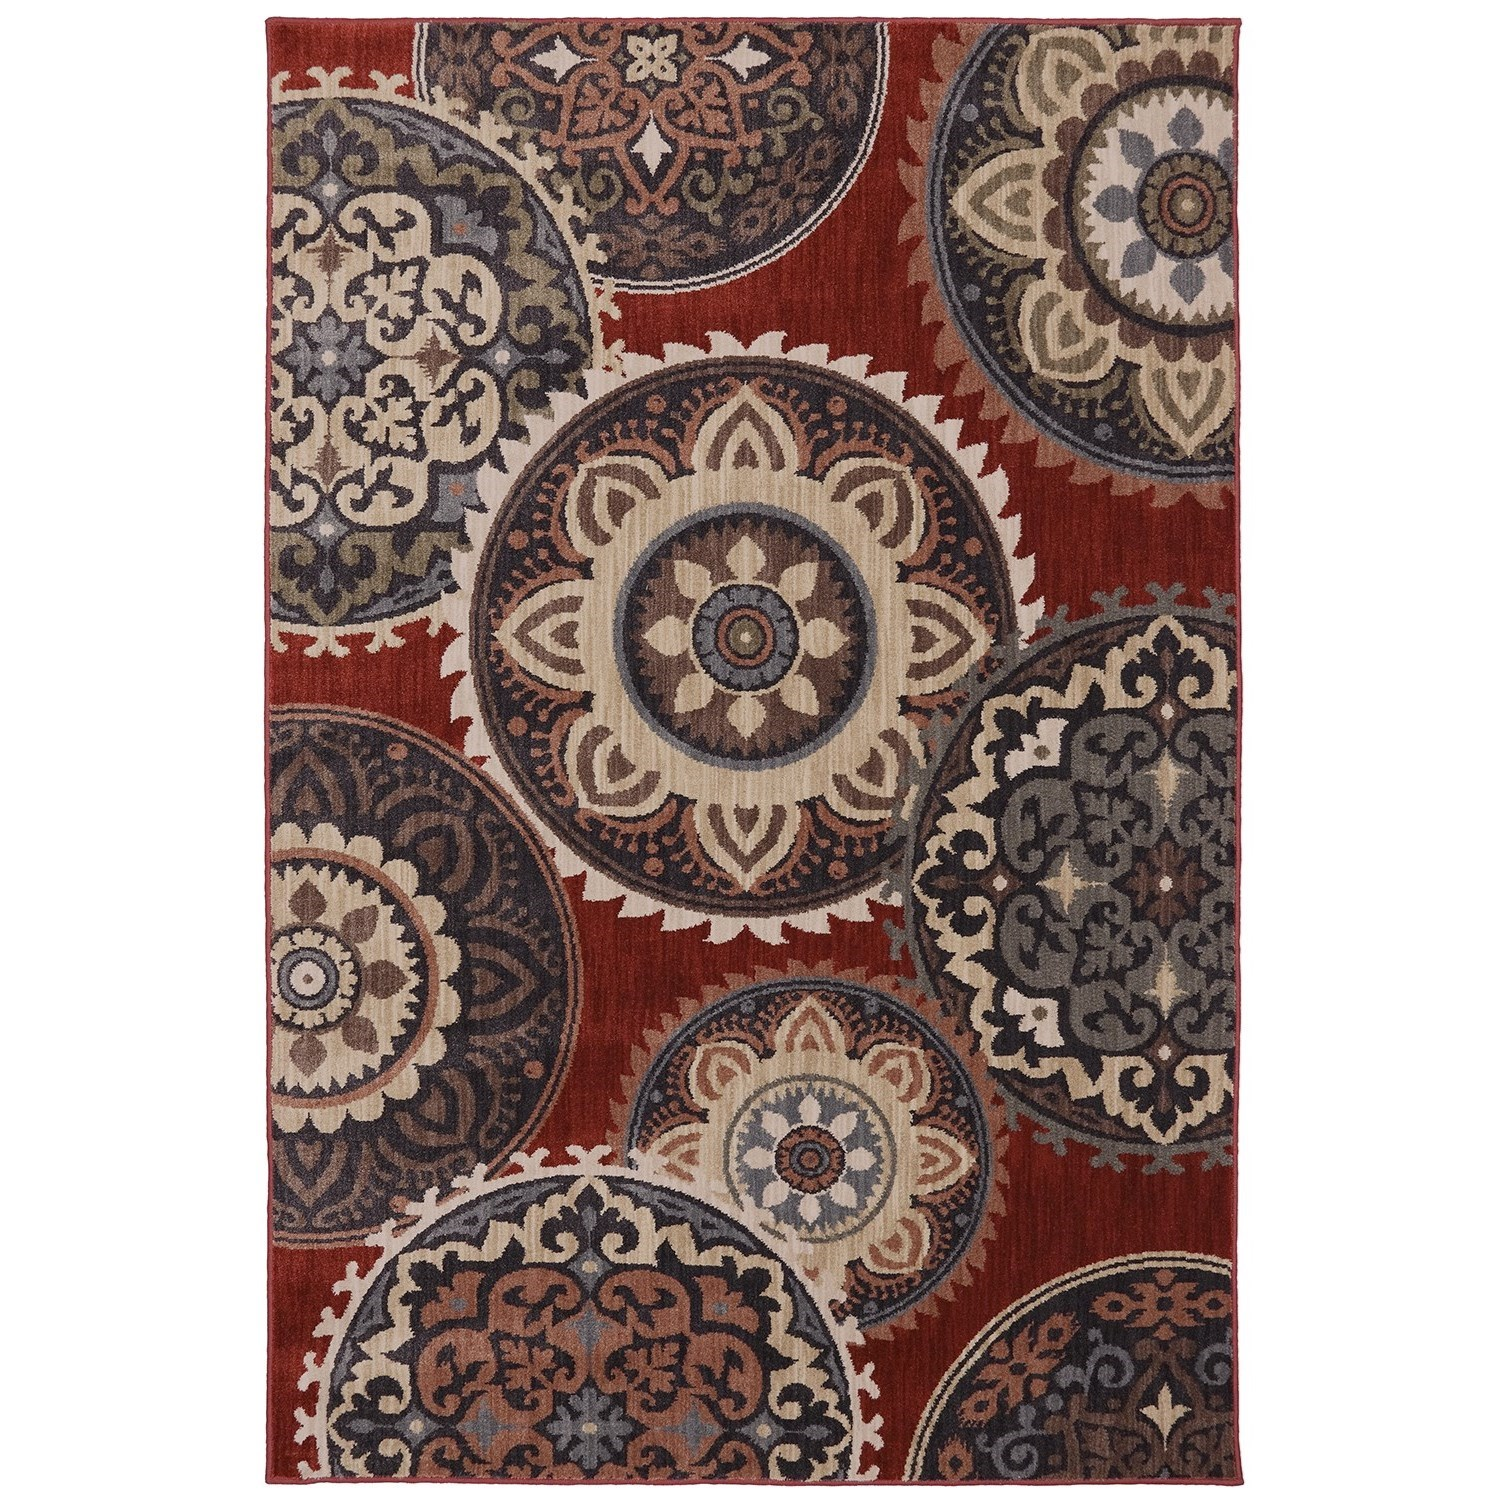 """Dryden 5' 3""""x7' 10"""" Summit View Ashen Area Rug by American Rug Craftsmen at Alison Craig Home Furnishings"""